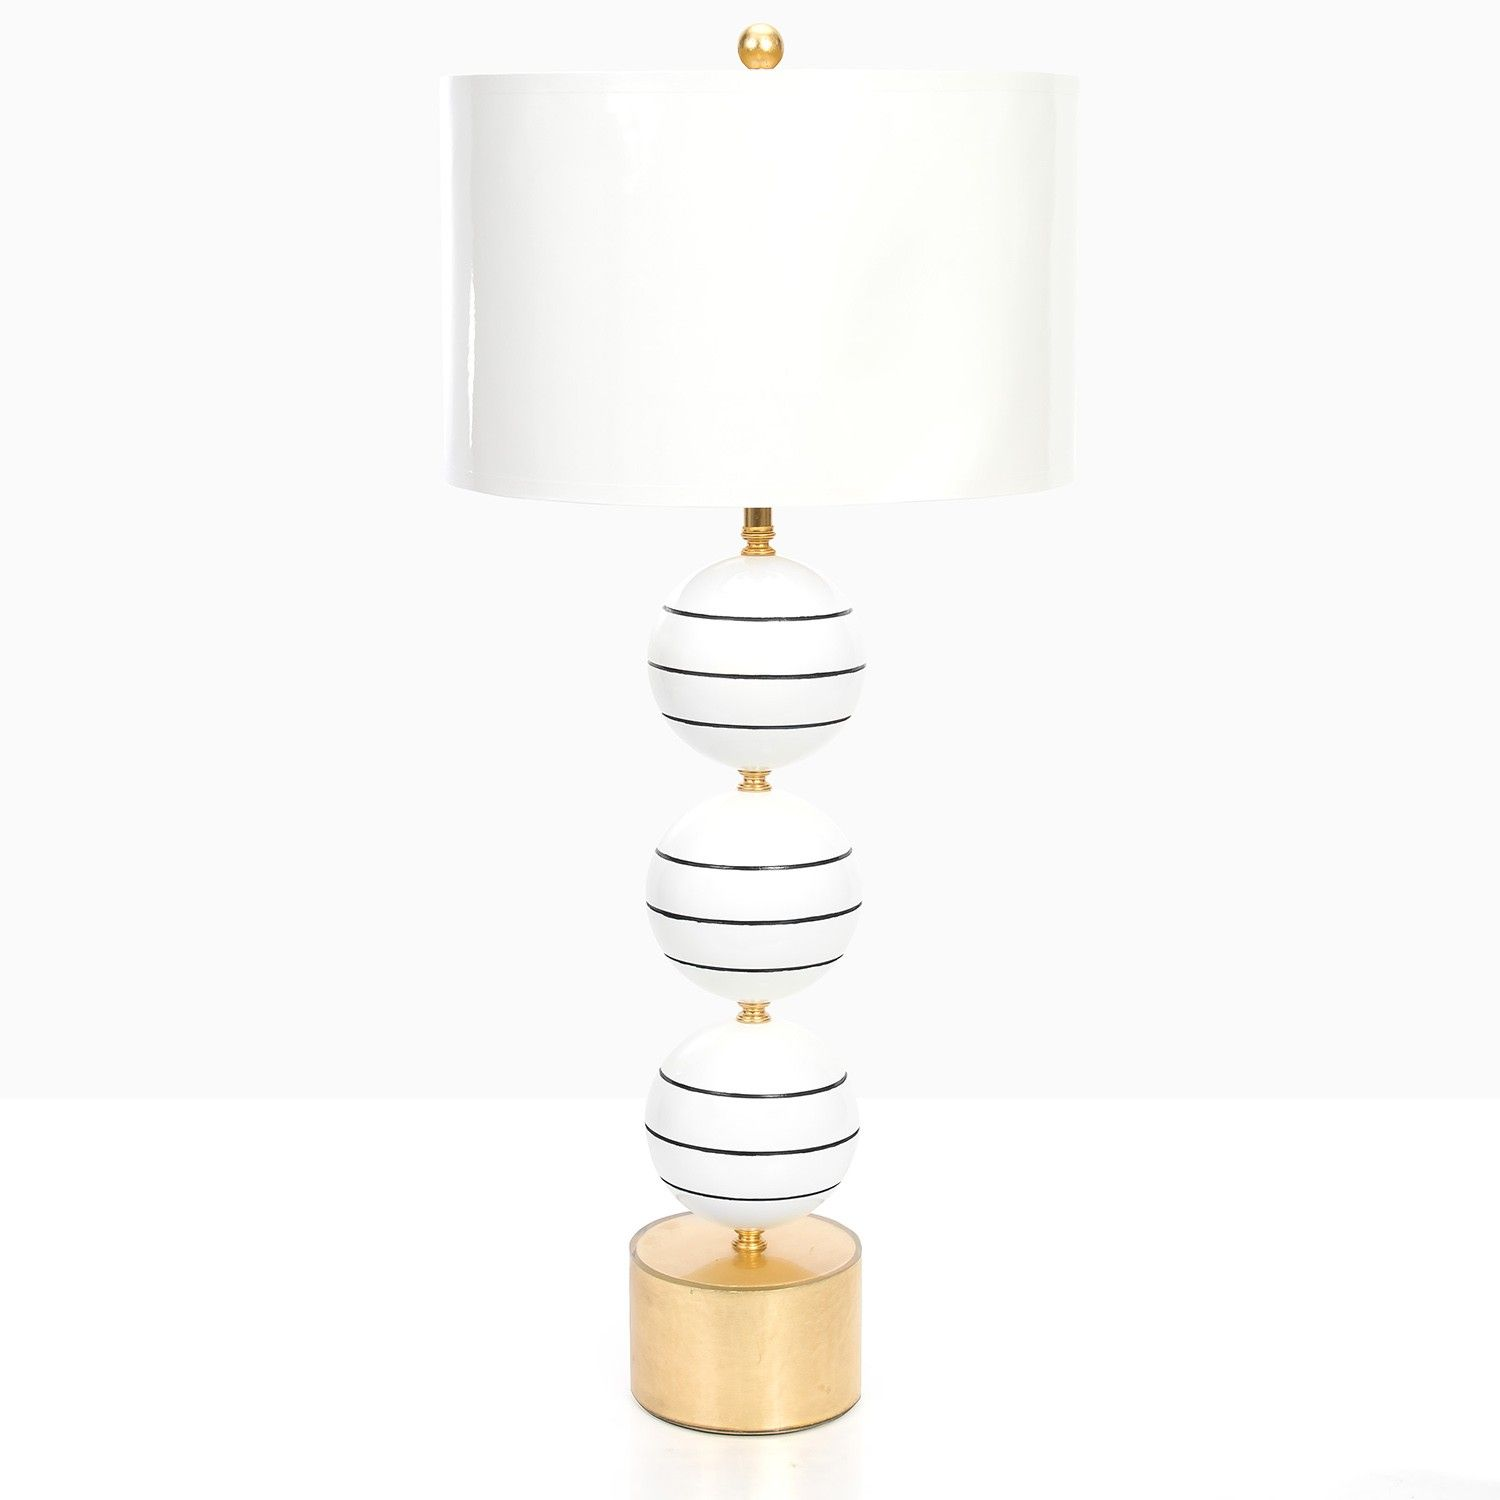 Couture Lamps Corona Del Mar Table Lamp The Adds Beauty And Cl To Any E Three High Gloss Lacquer Orbs With